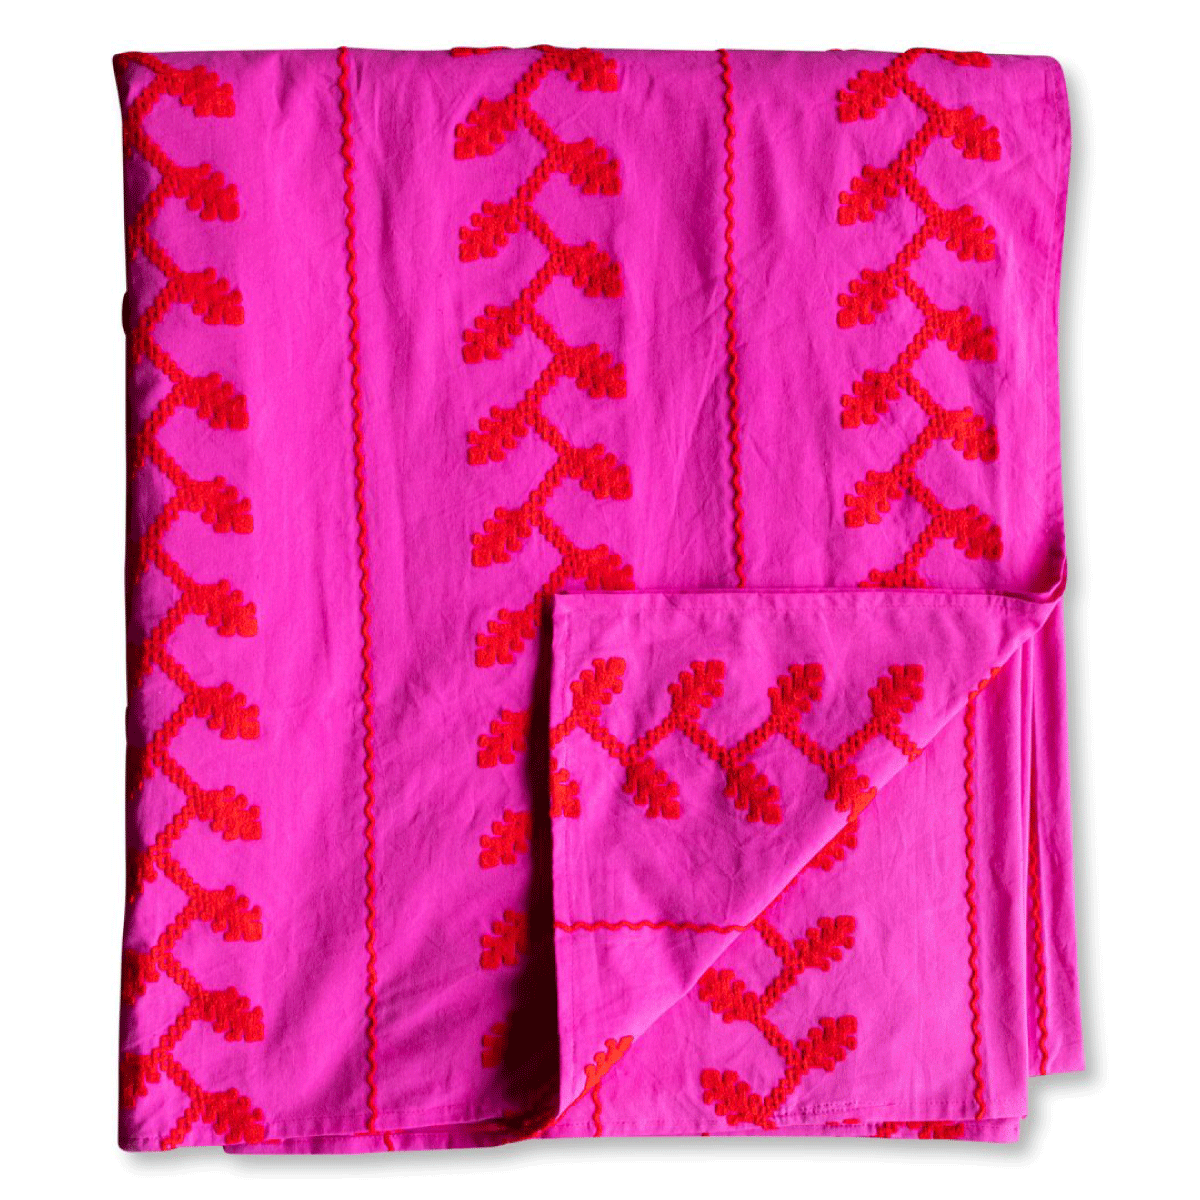 Helena Embroidered Textile - Pink